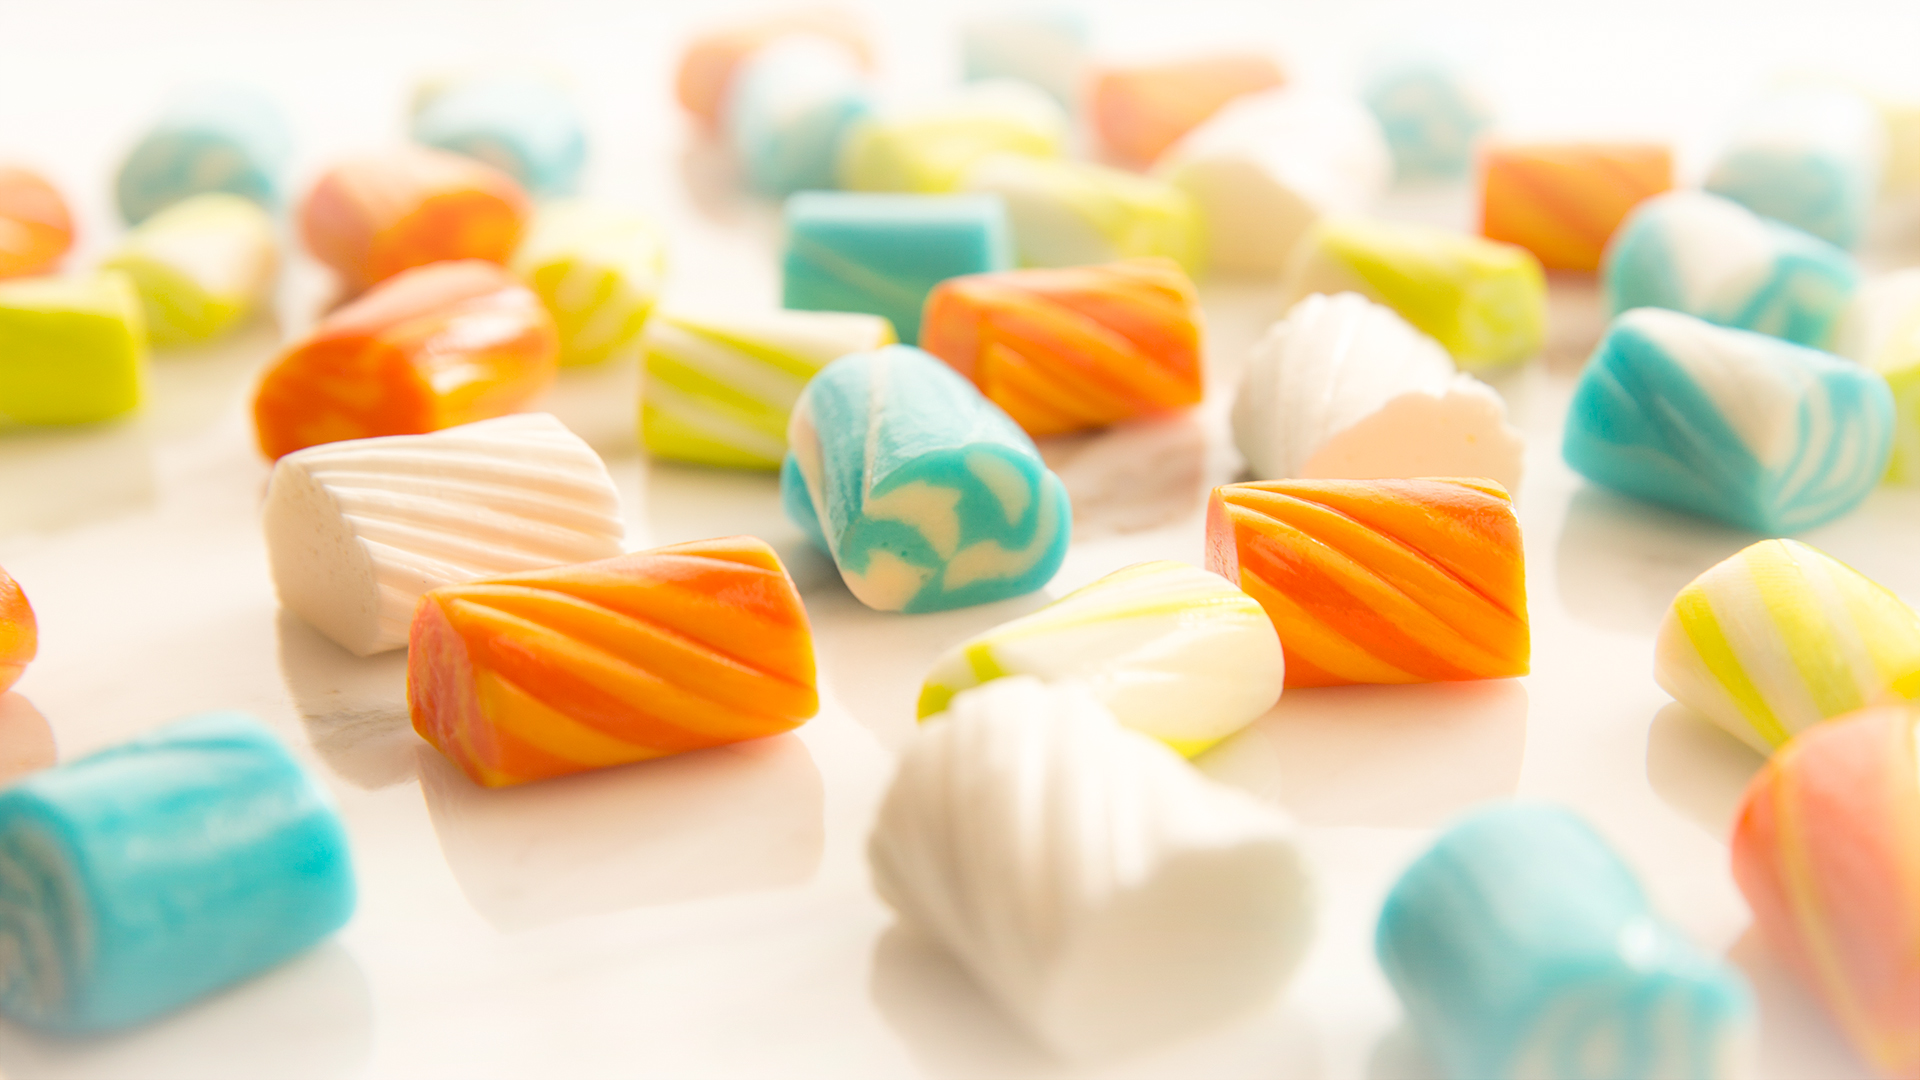 Starburst-Style Chewy Candy